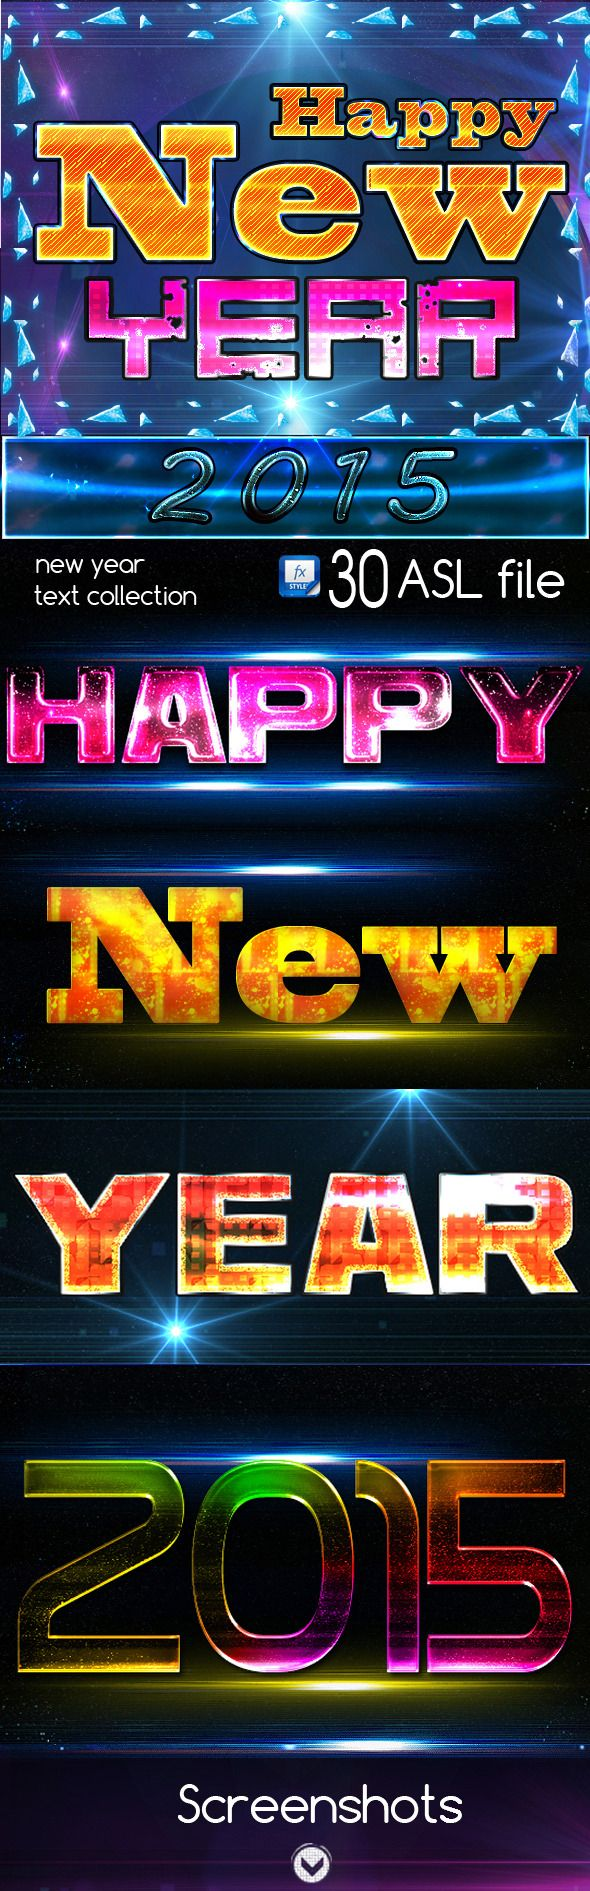 Happy New Year 2015 Text Effects by efat2011 New Year 2015 Text Effects <hover>http://graphicriver.net/item/12-premium-text-effect/10924839</hover> http://graphicriver.net/ite